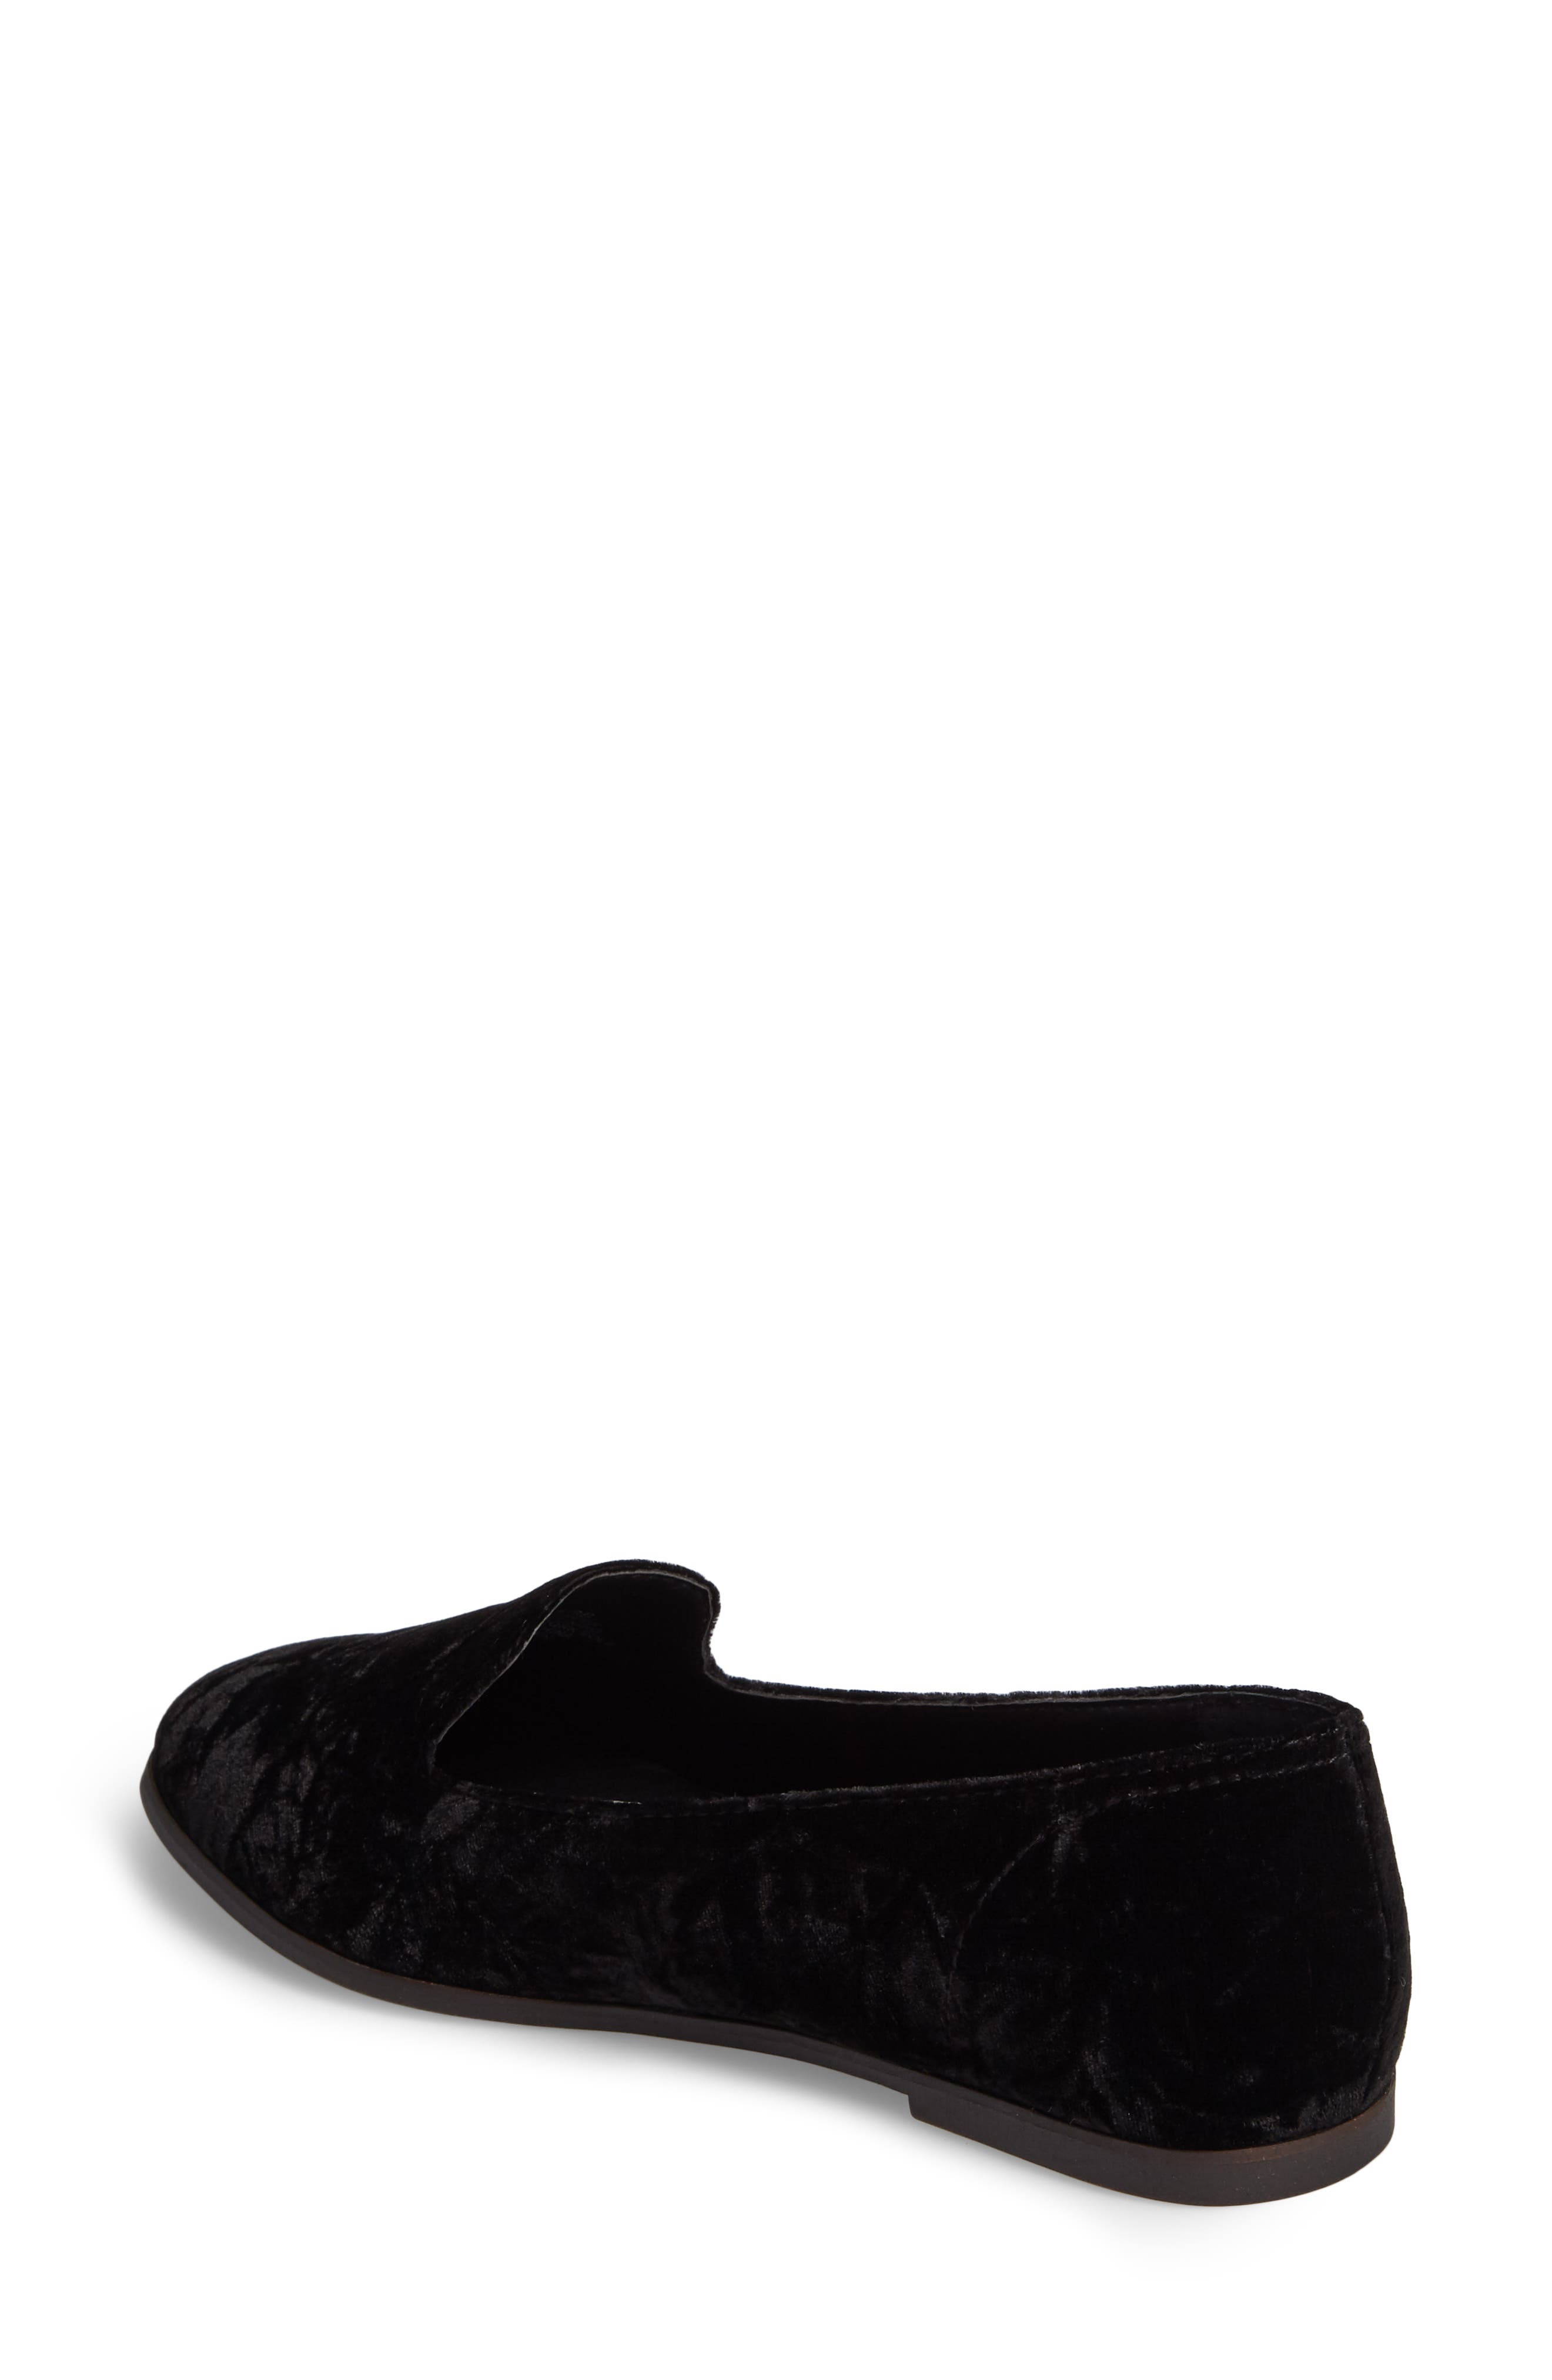 Carlyn Loafer Flat,                             Alternate thumbnail 2, color,                             001